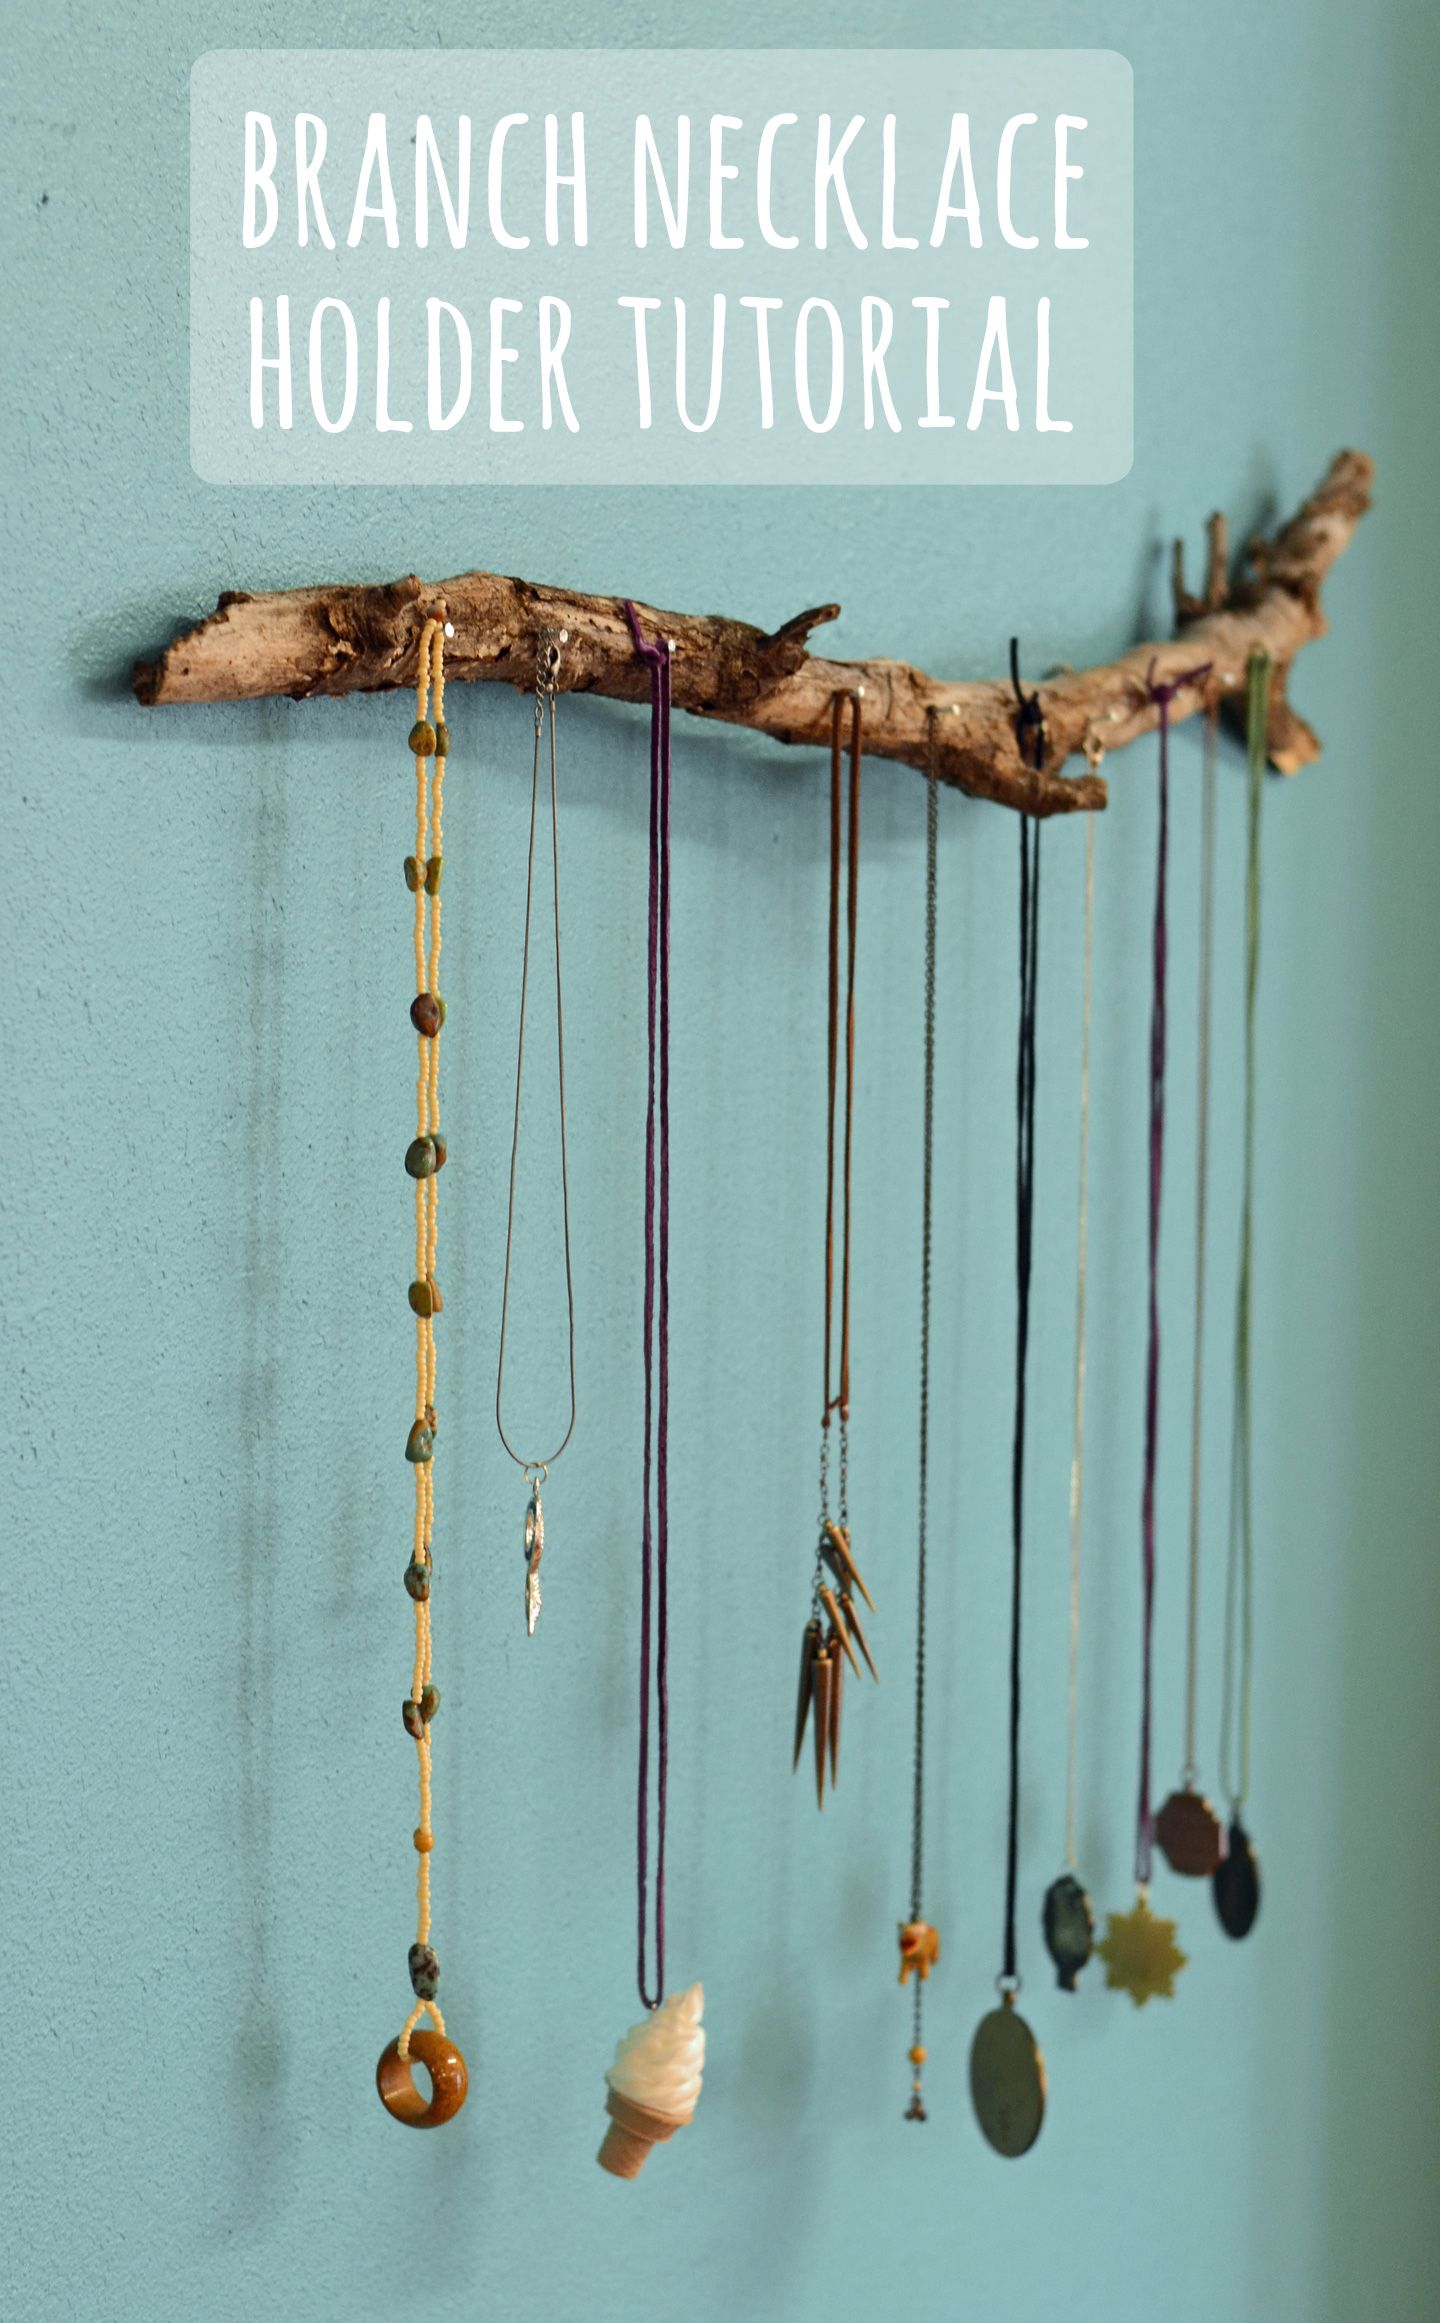 Branch Necklace Holder I Can Totally Do This With My Limited Tool Collection Too Diy Jewelry Display